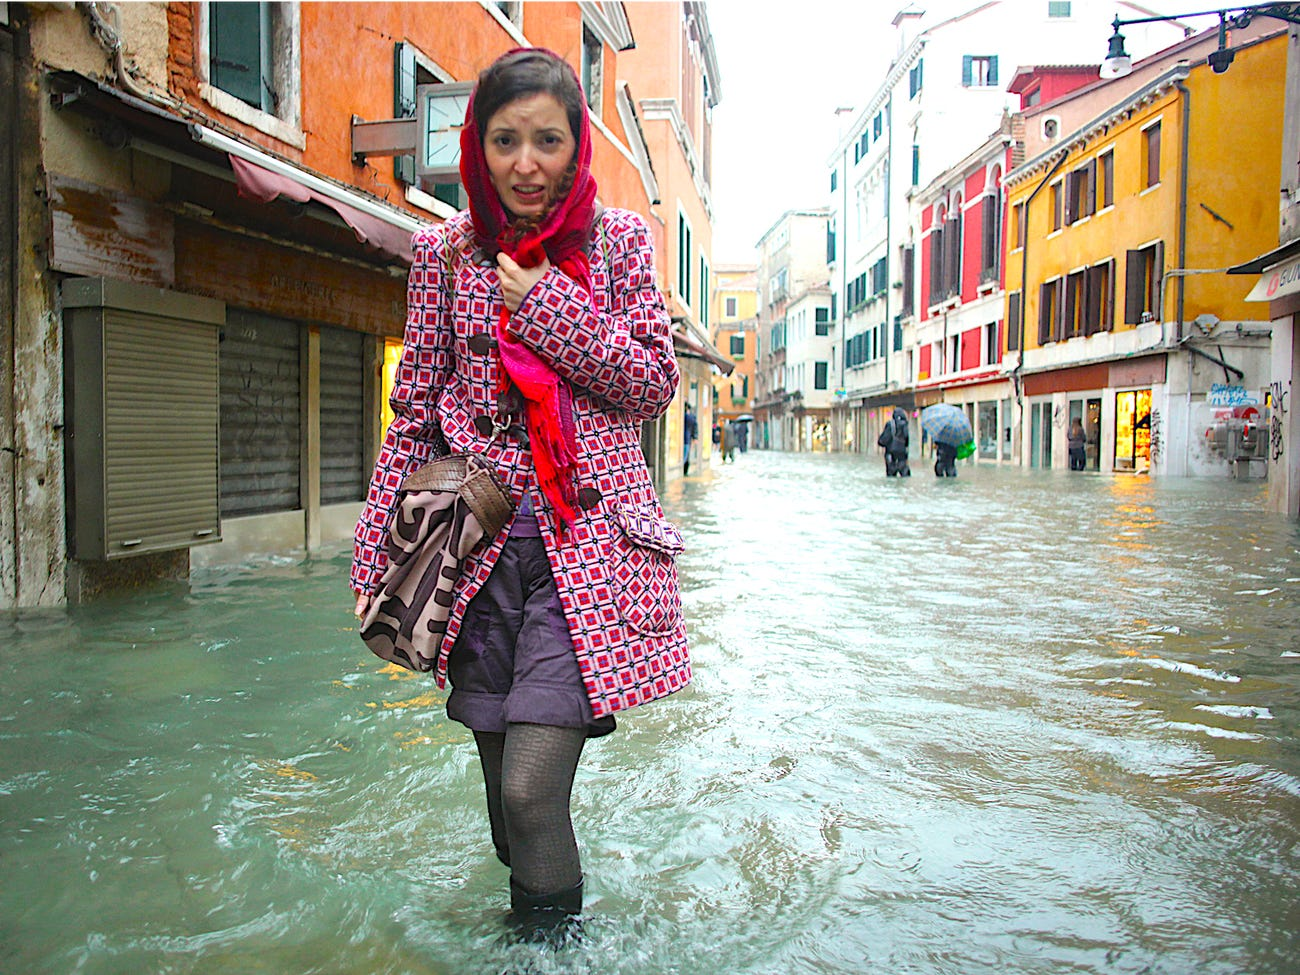 A woman walks in a flooded street during a period of seasonal high water in Venice, Italy, November 11, 2012. The water level in the canal city rose to 149 cm (59 inches) above normal. REUTERS/Manuel Silvestri